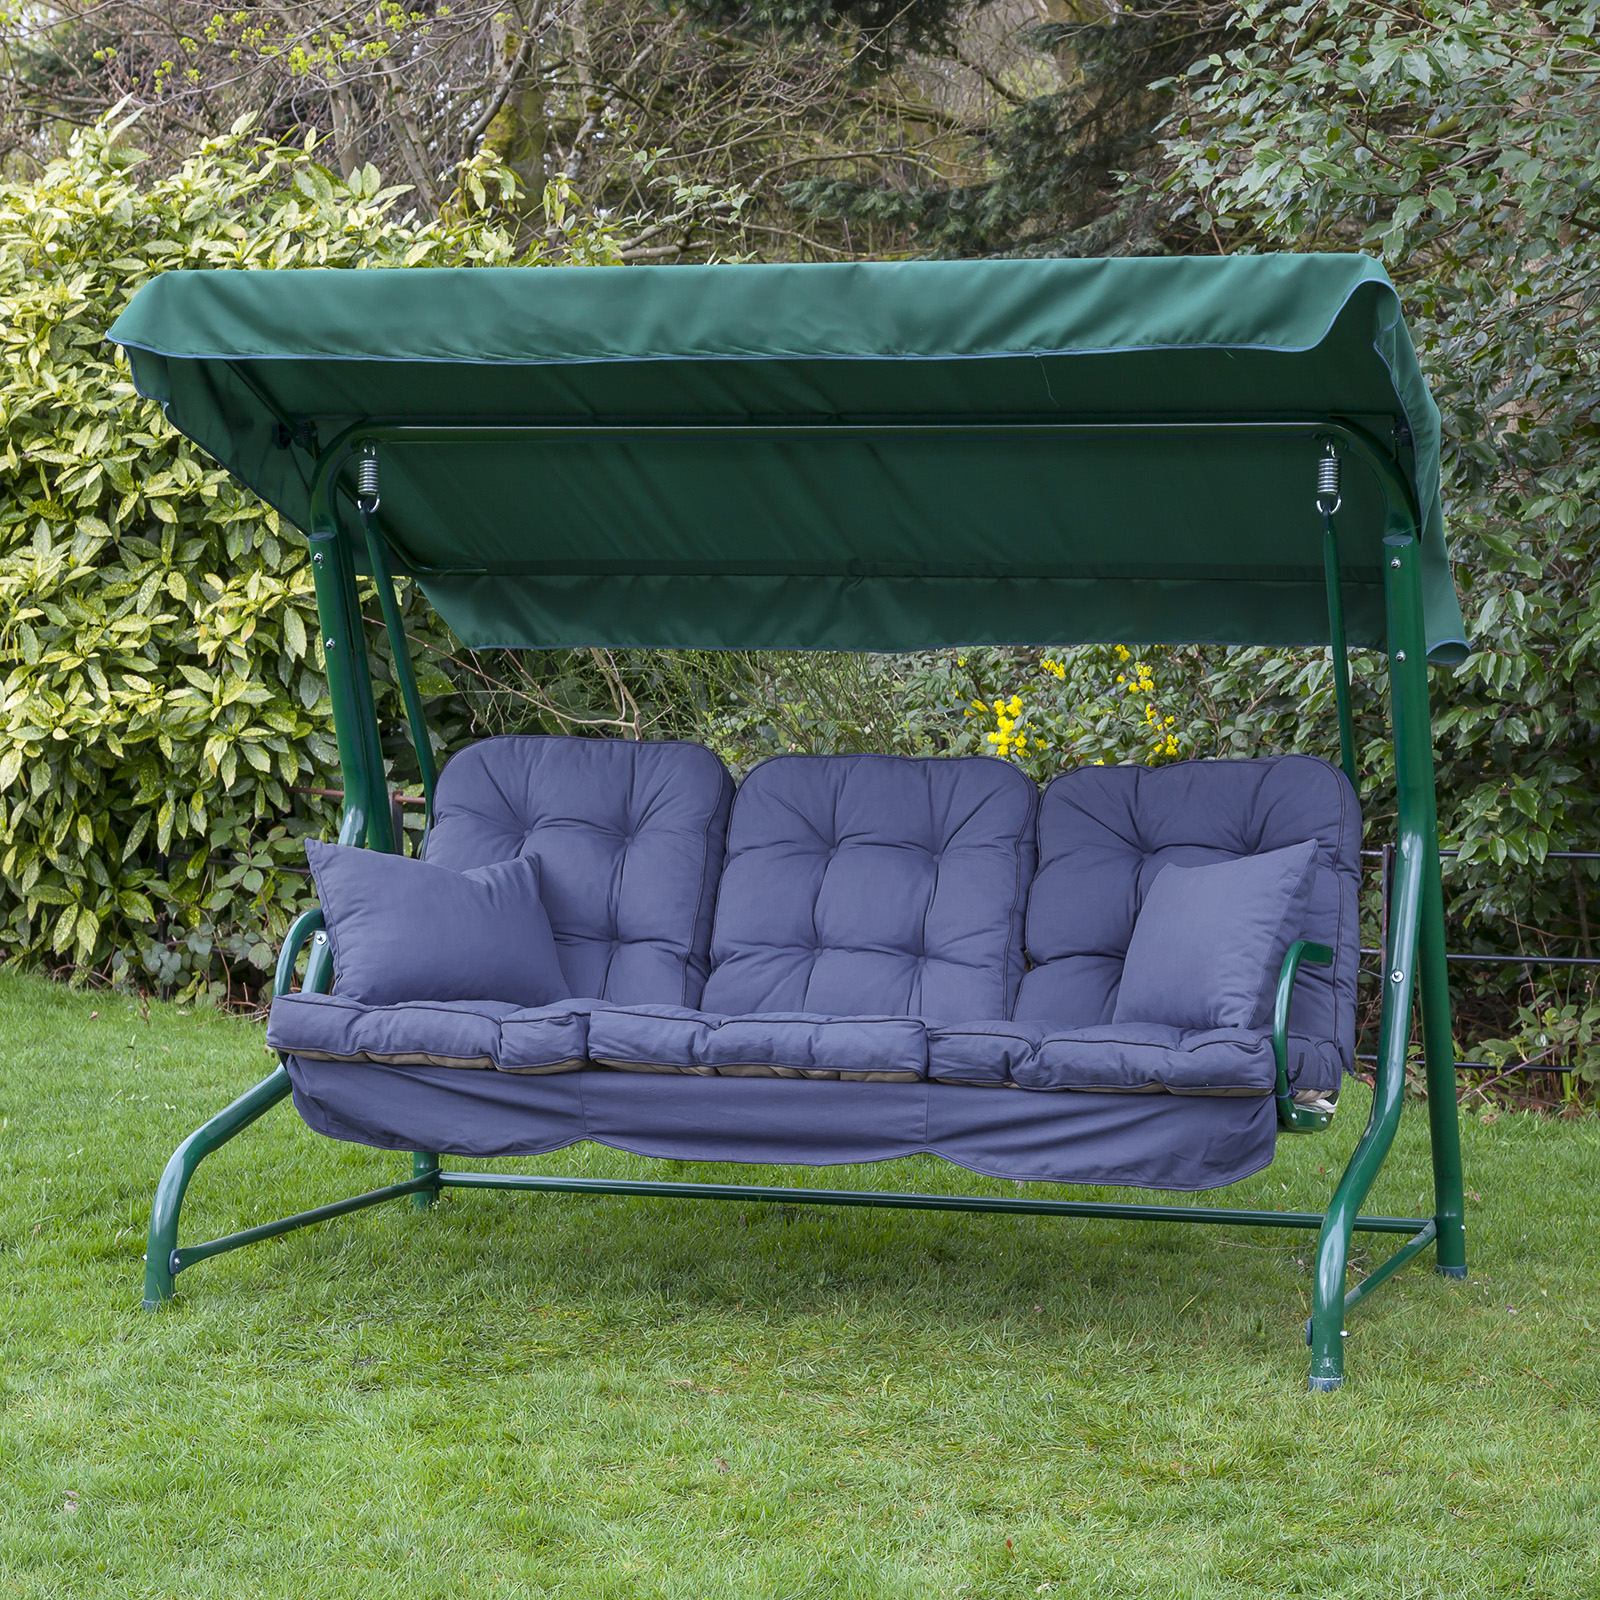 Garden 3 Seater Replacement Swing Seat Hammock Cushion Set ...